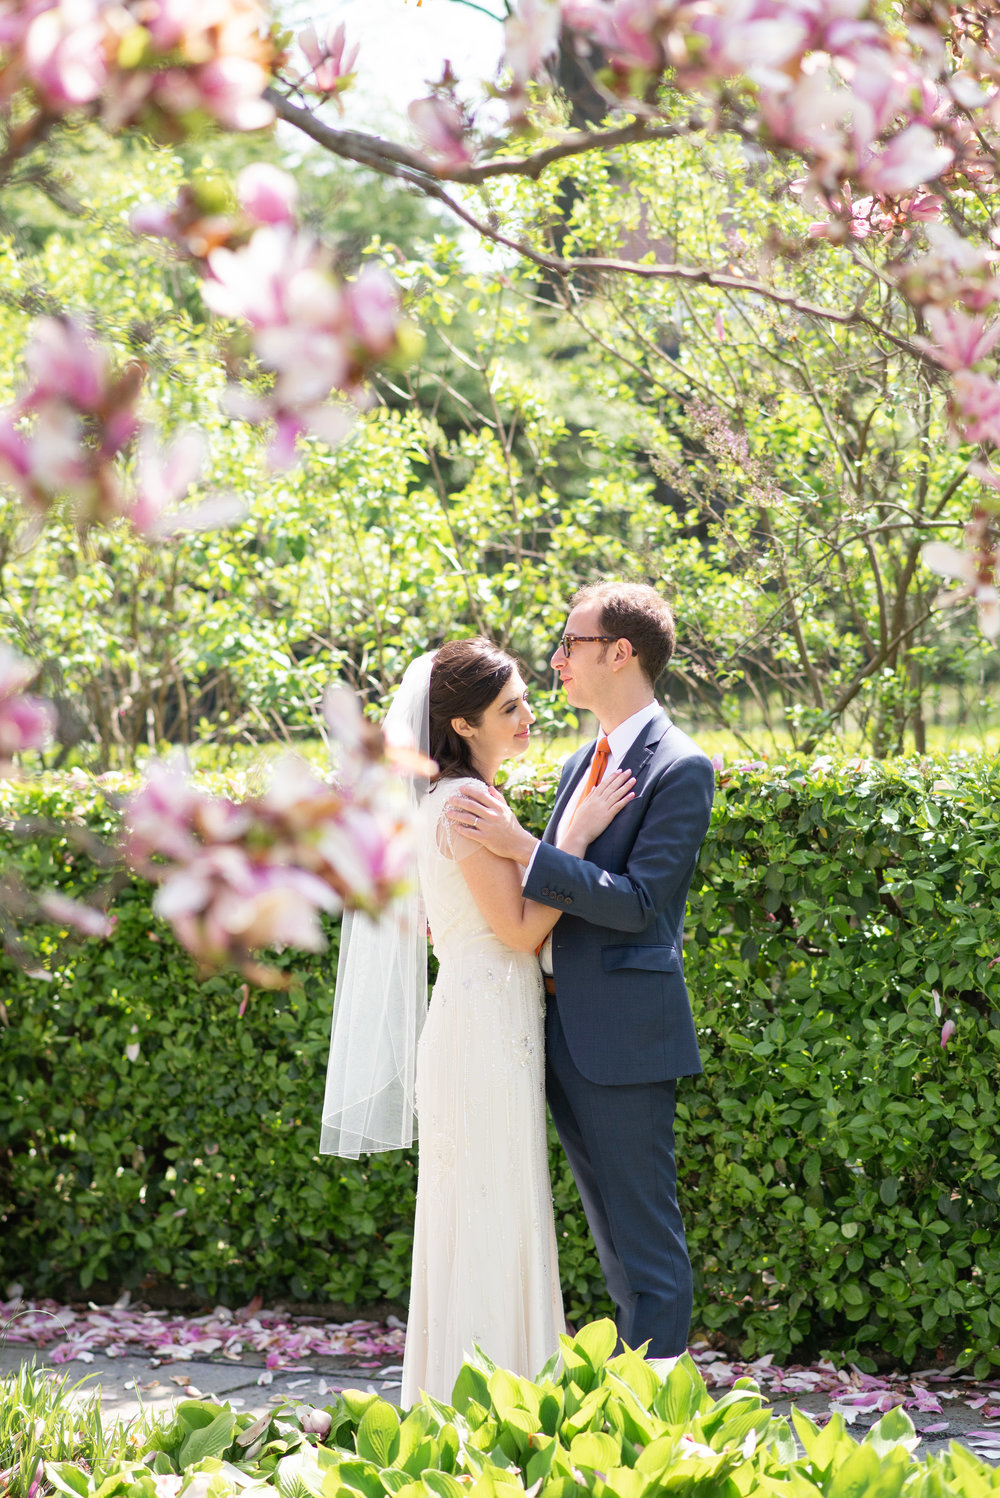 central park conservatory garden wedding photography 7.jpg